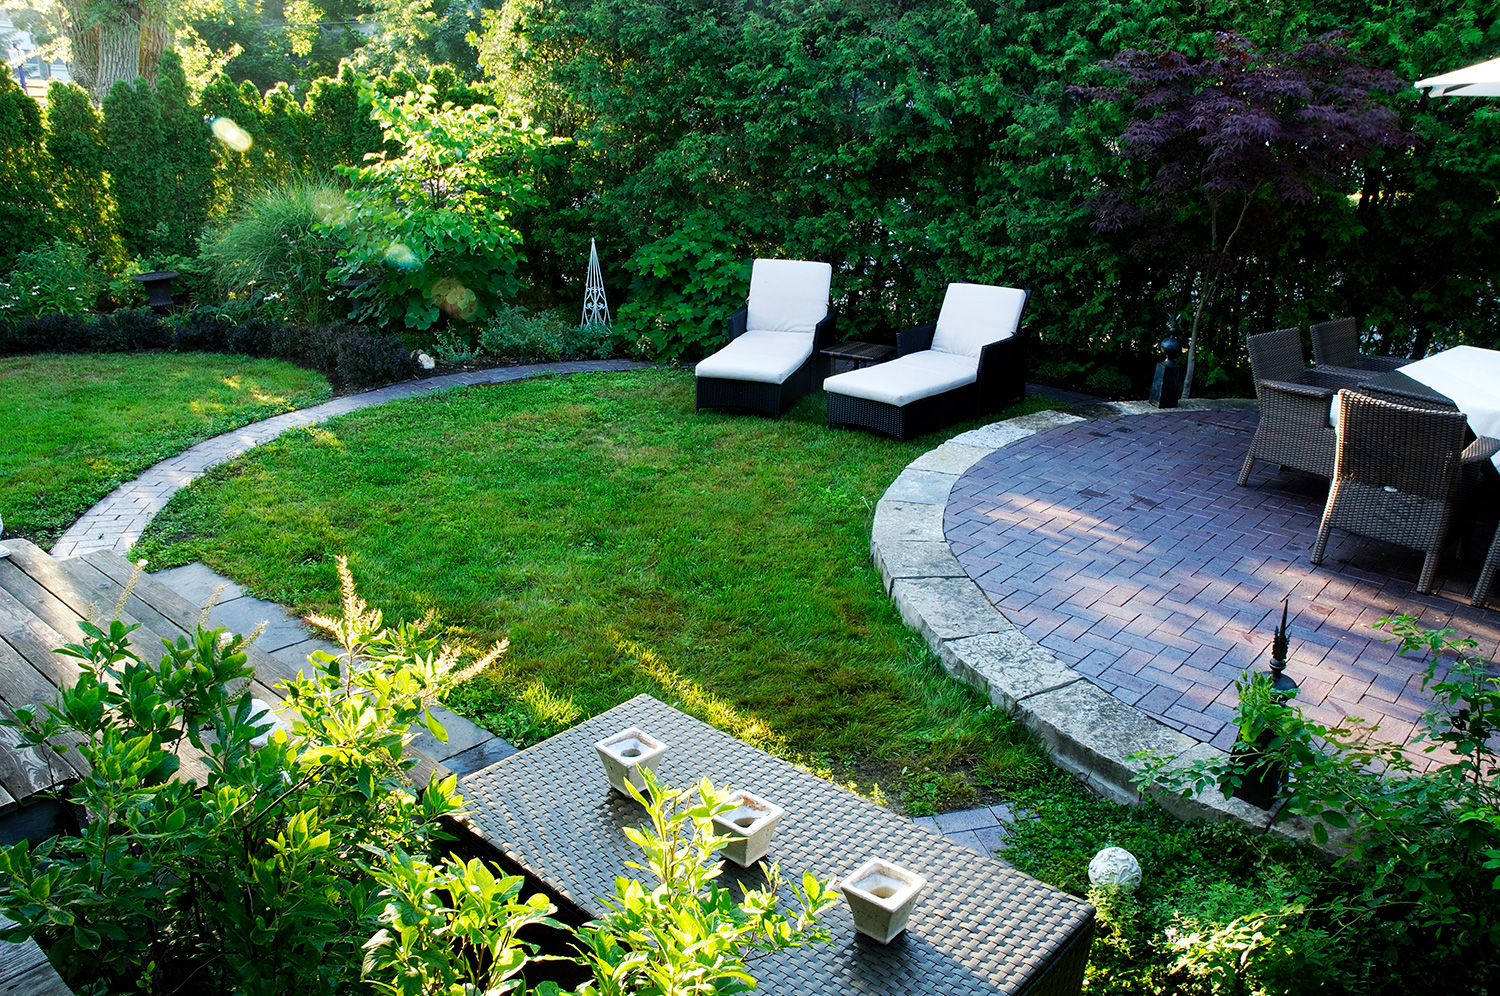 Pointe claire hodgins and associates landscape design for Associate landscape architect